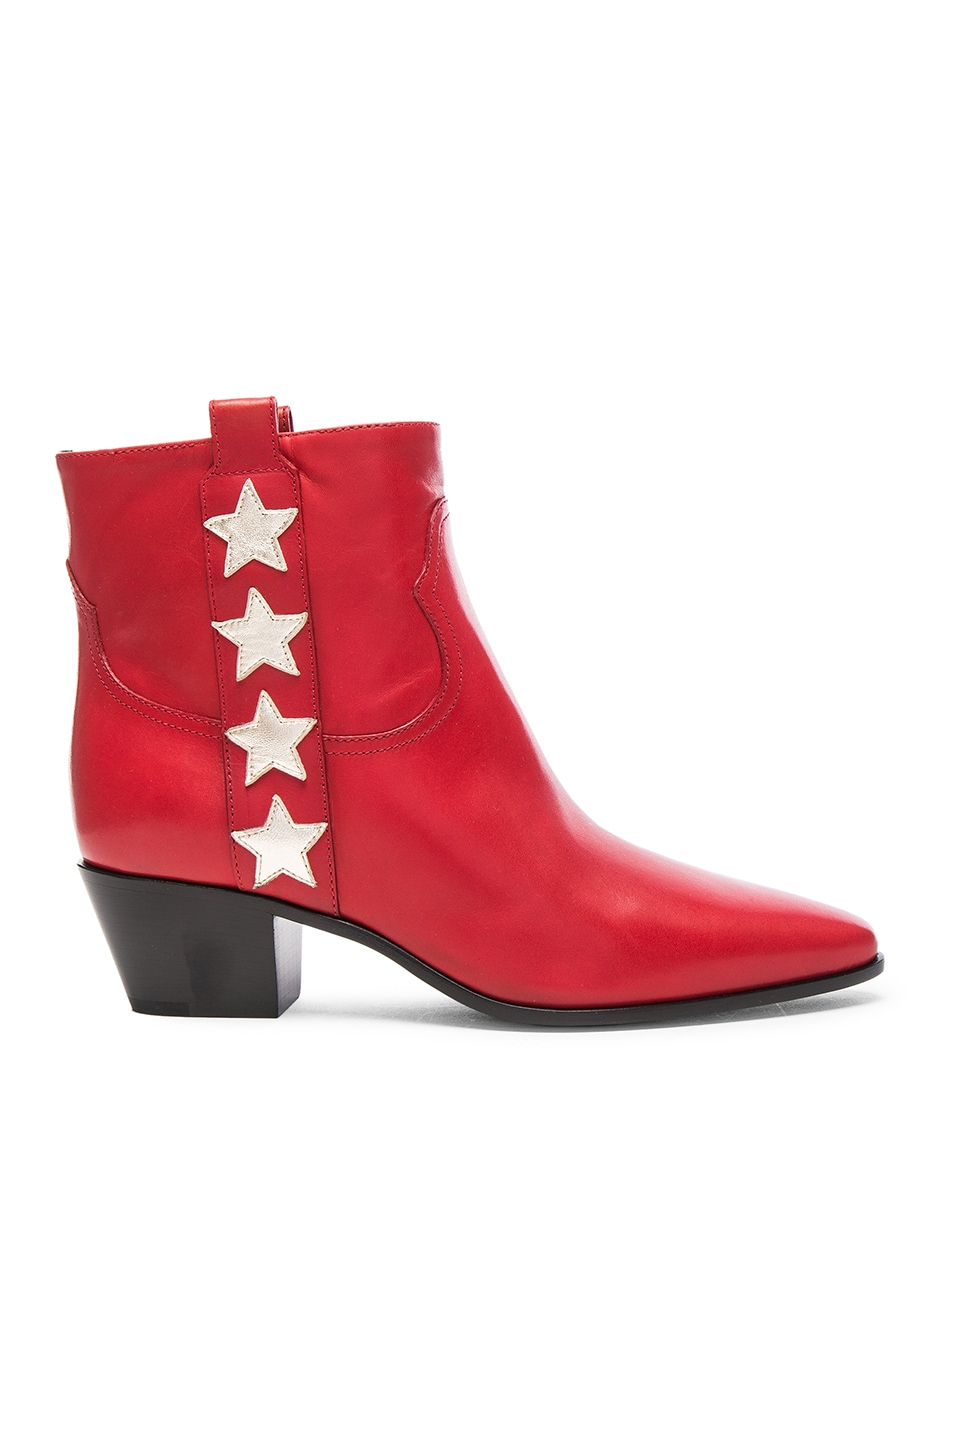 Image 1 of Saint Laurent Rock Leather Boots in Red & Pale Gold